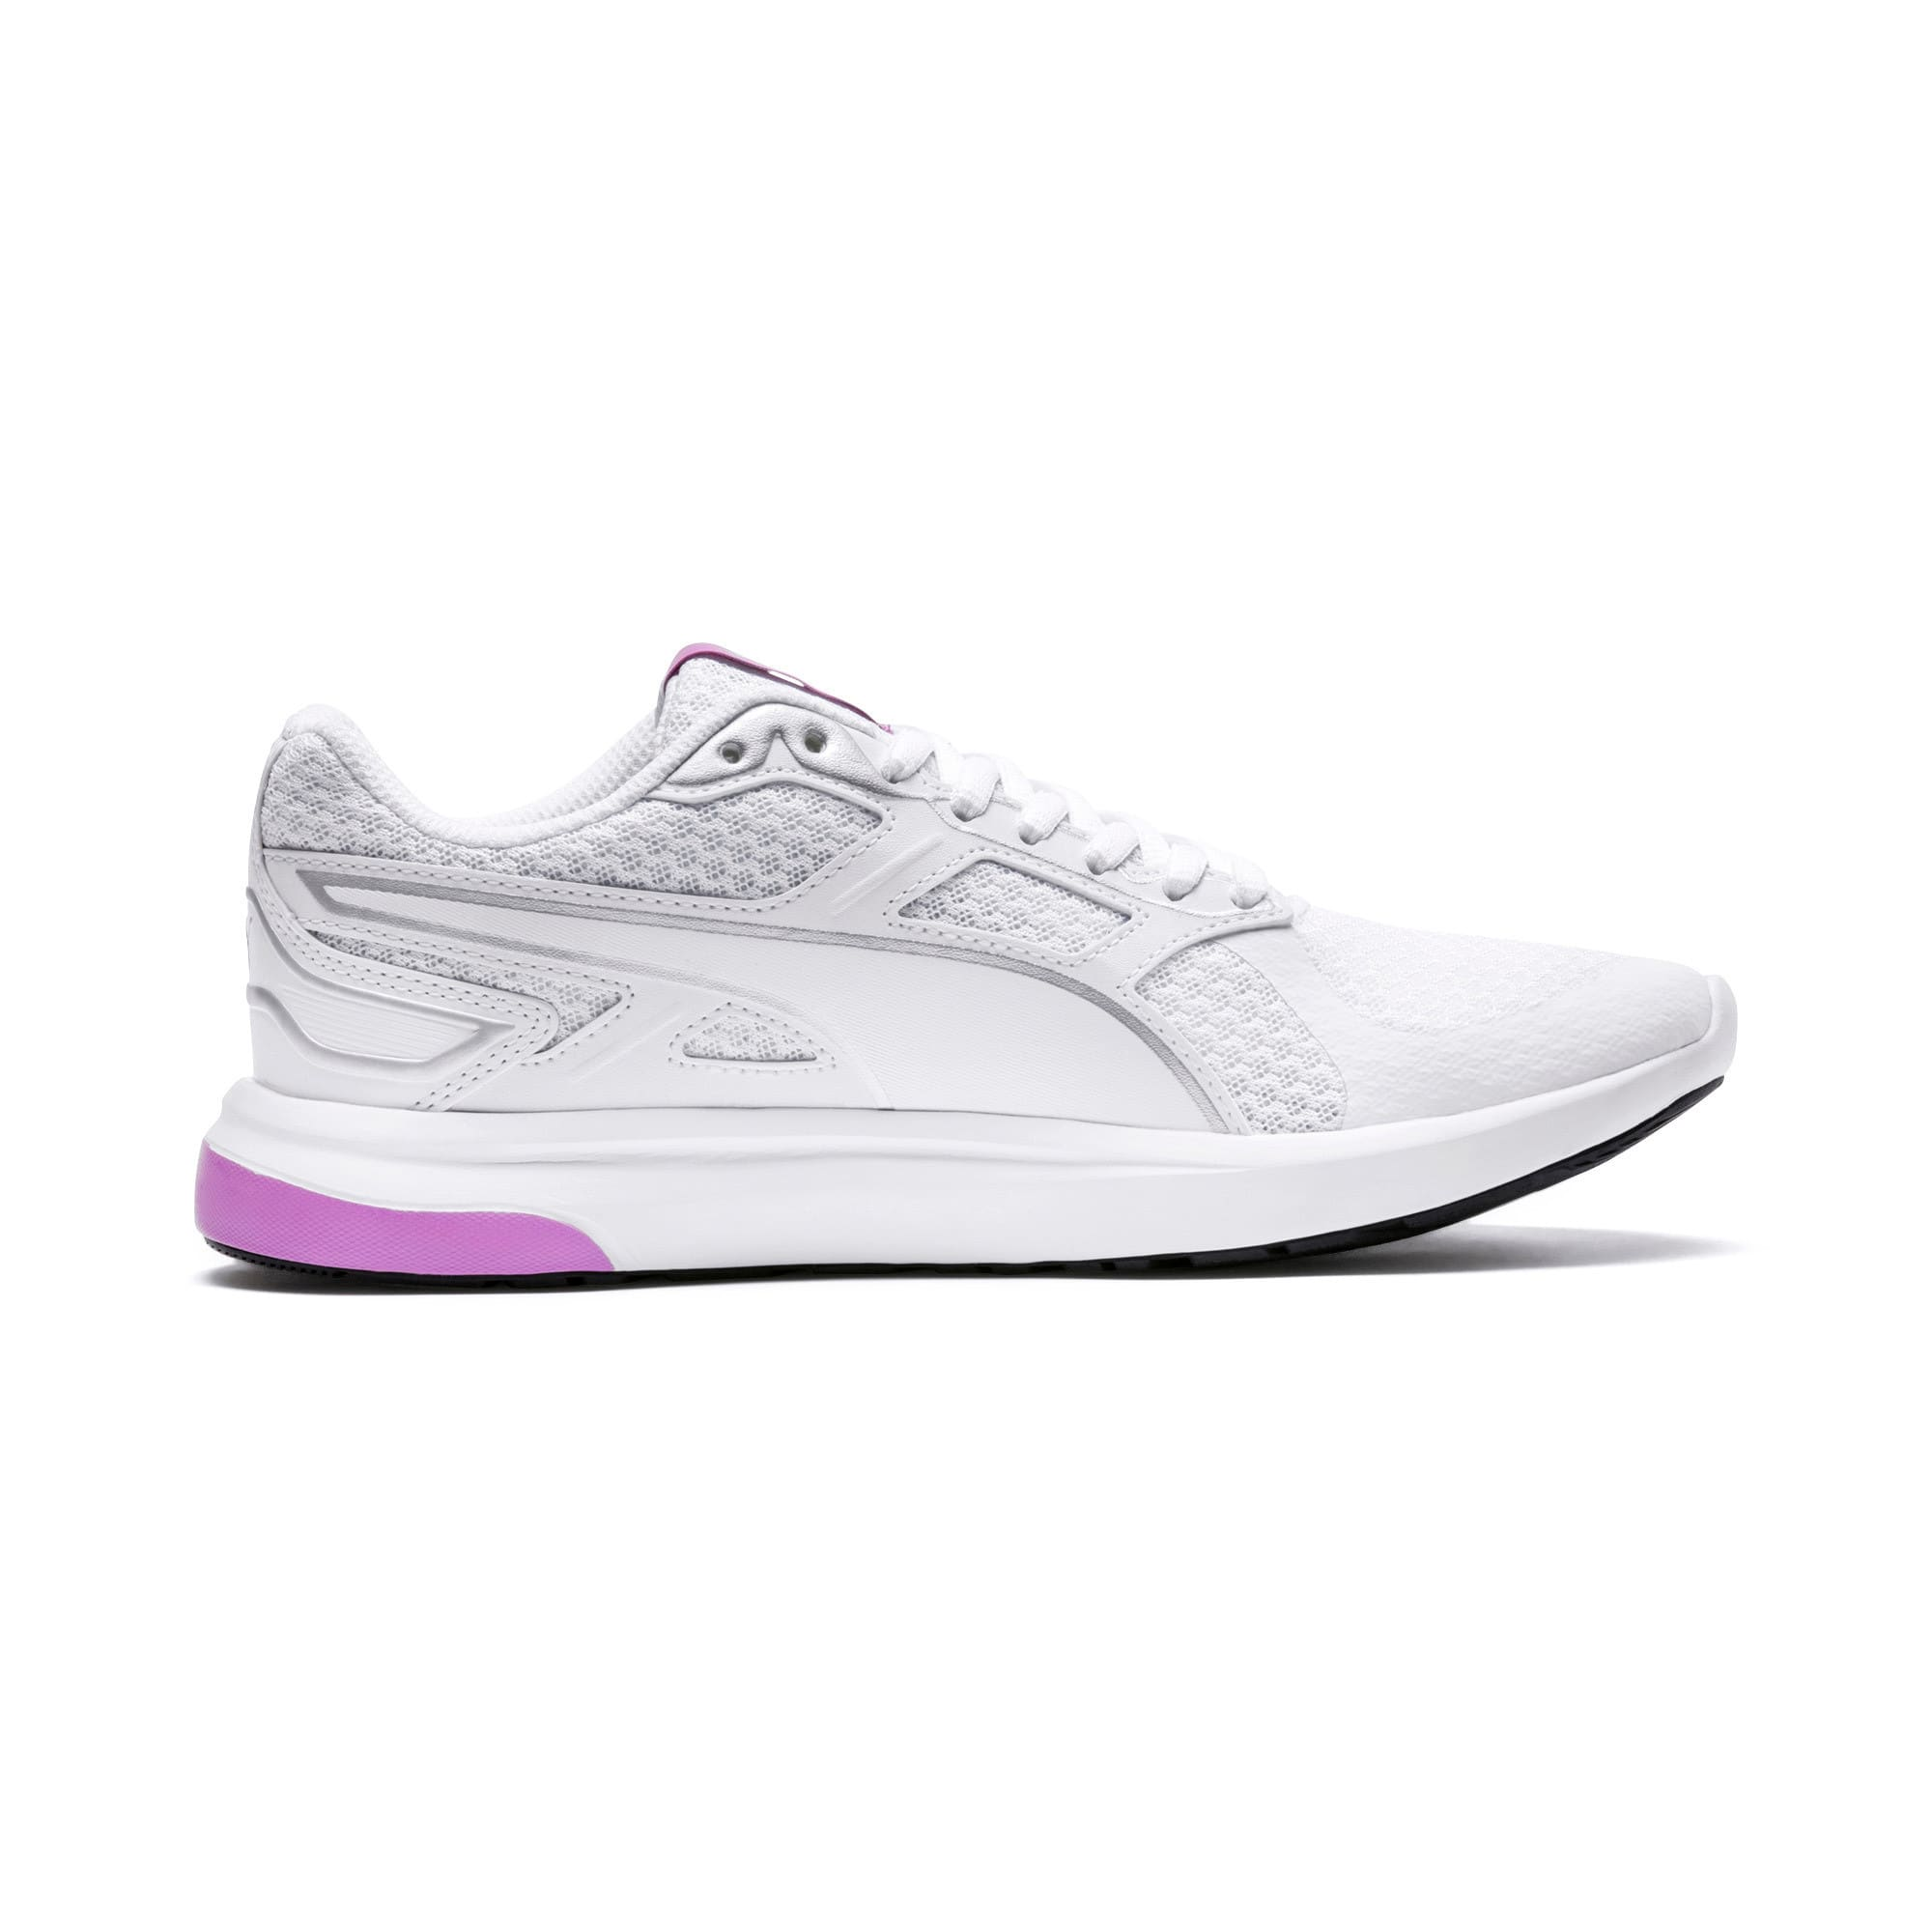 Thumbnail 5 of Escaper Tech Sneakers, Puma White-Puma White-Orchid, medium-IND